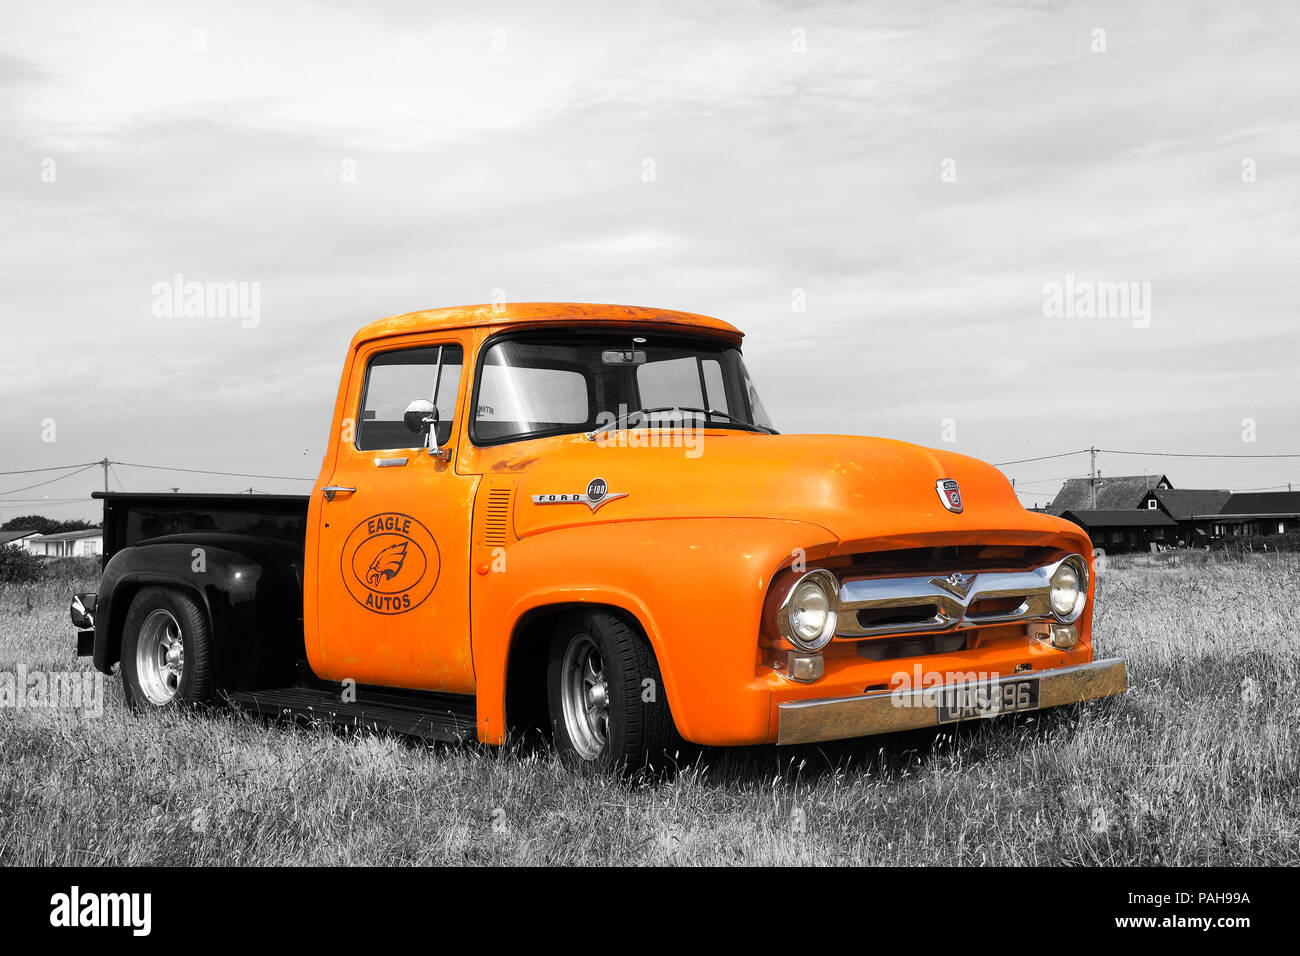 1956 Ford F100 Pick up Truck - Stock Image